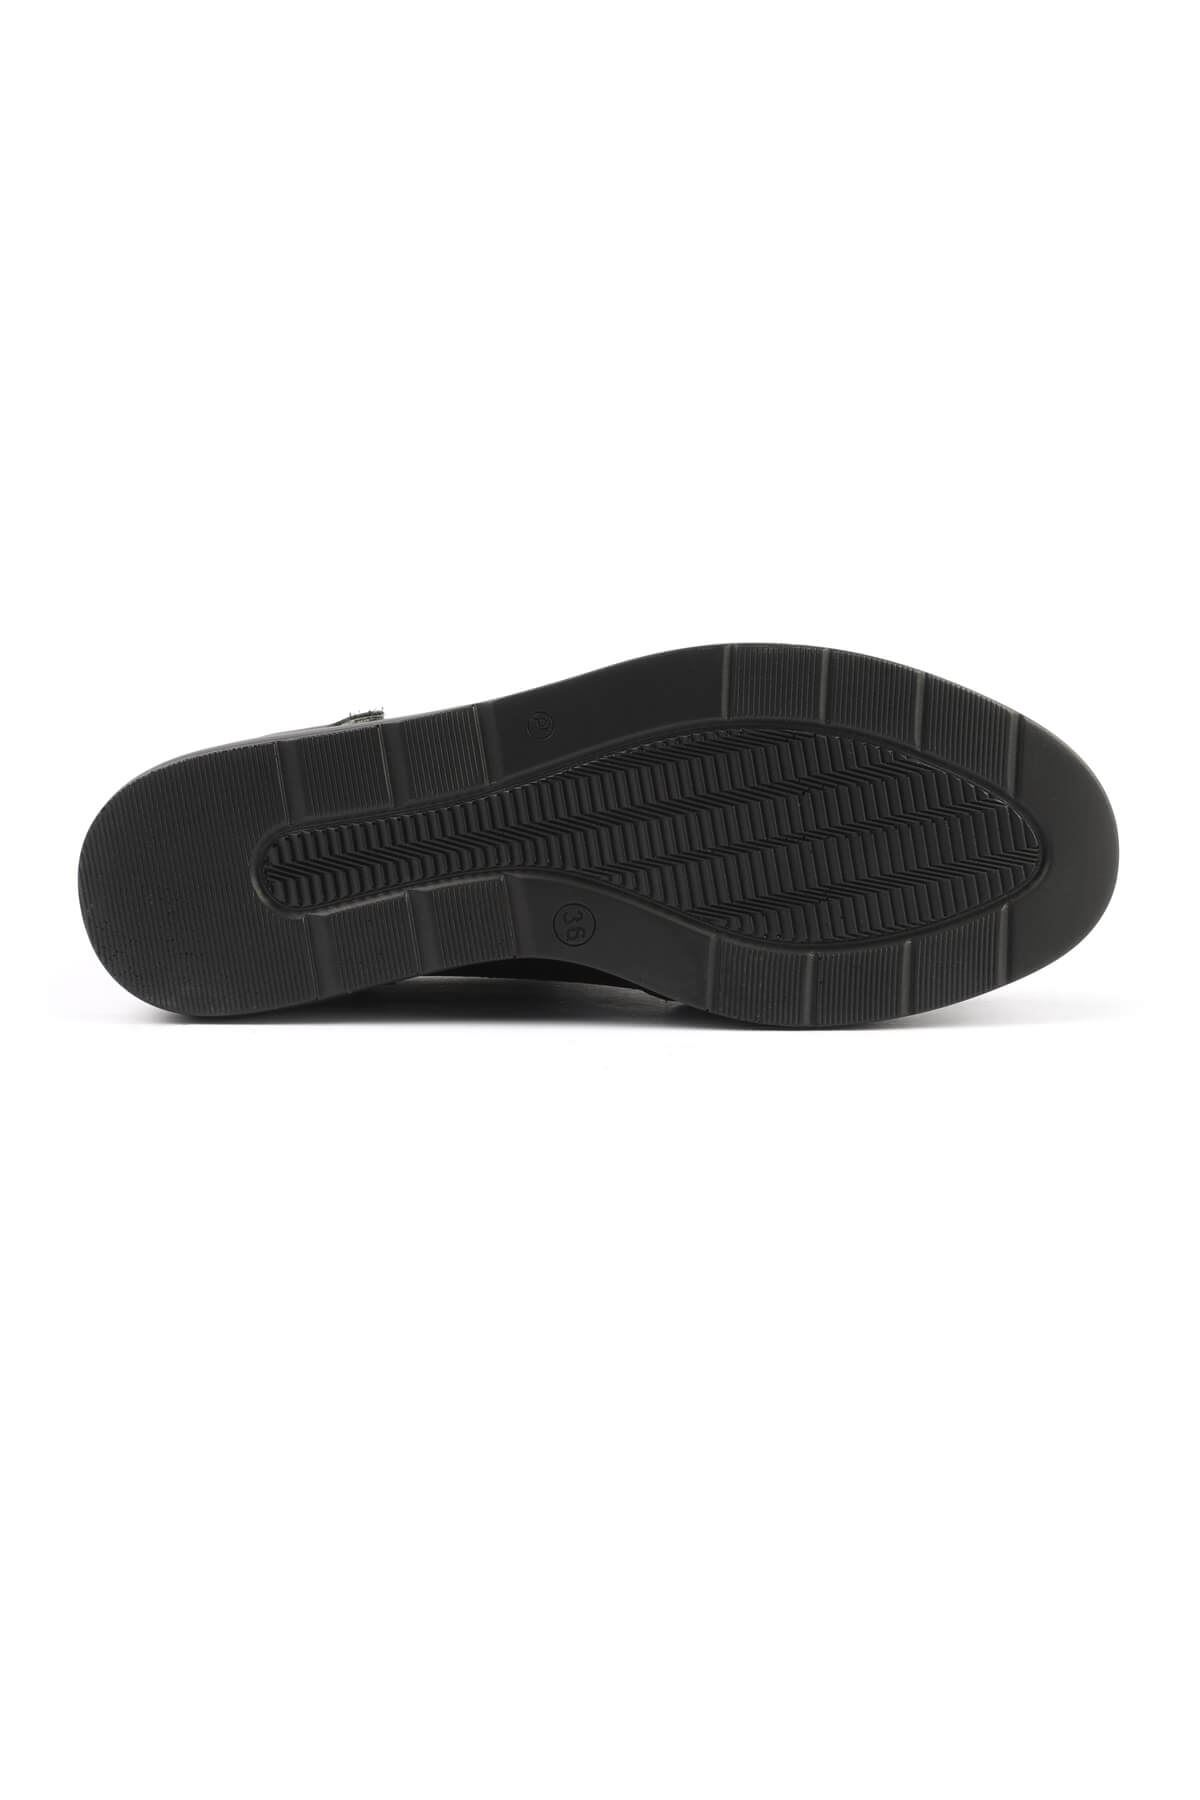 Libero FMS218 Black Casual Shoes